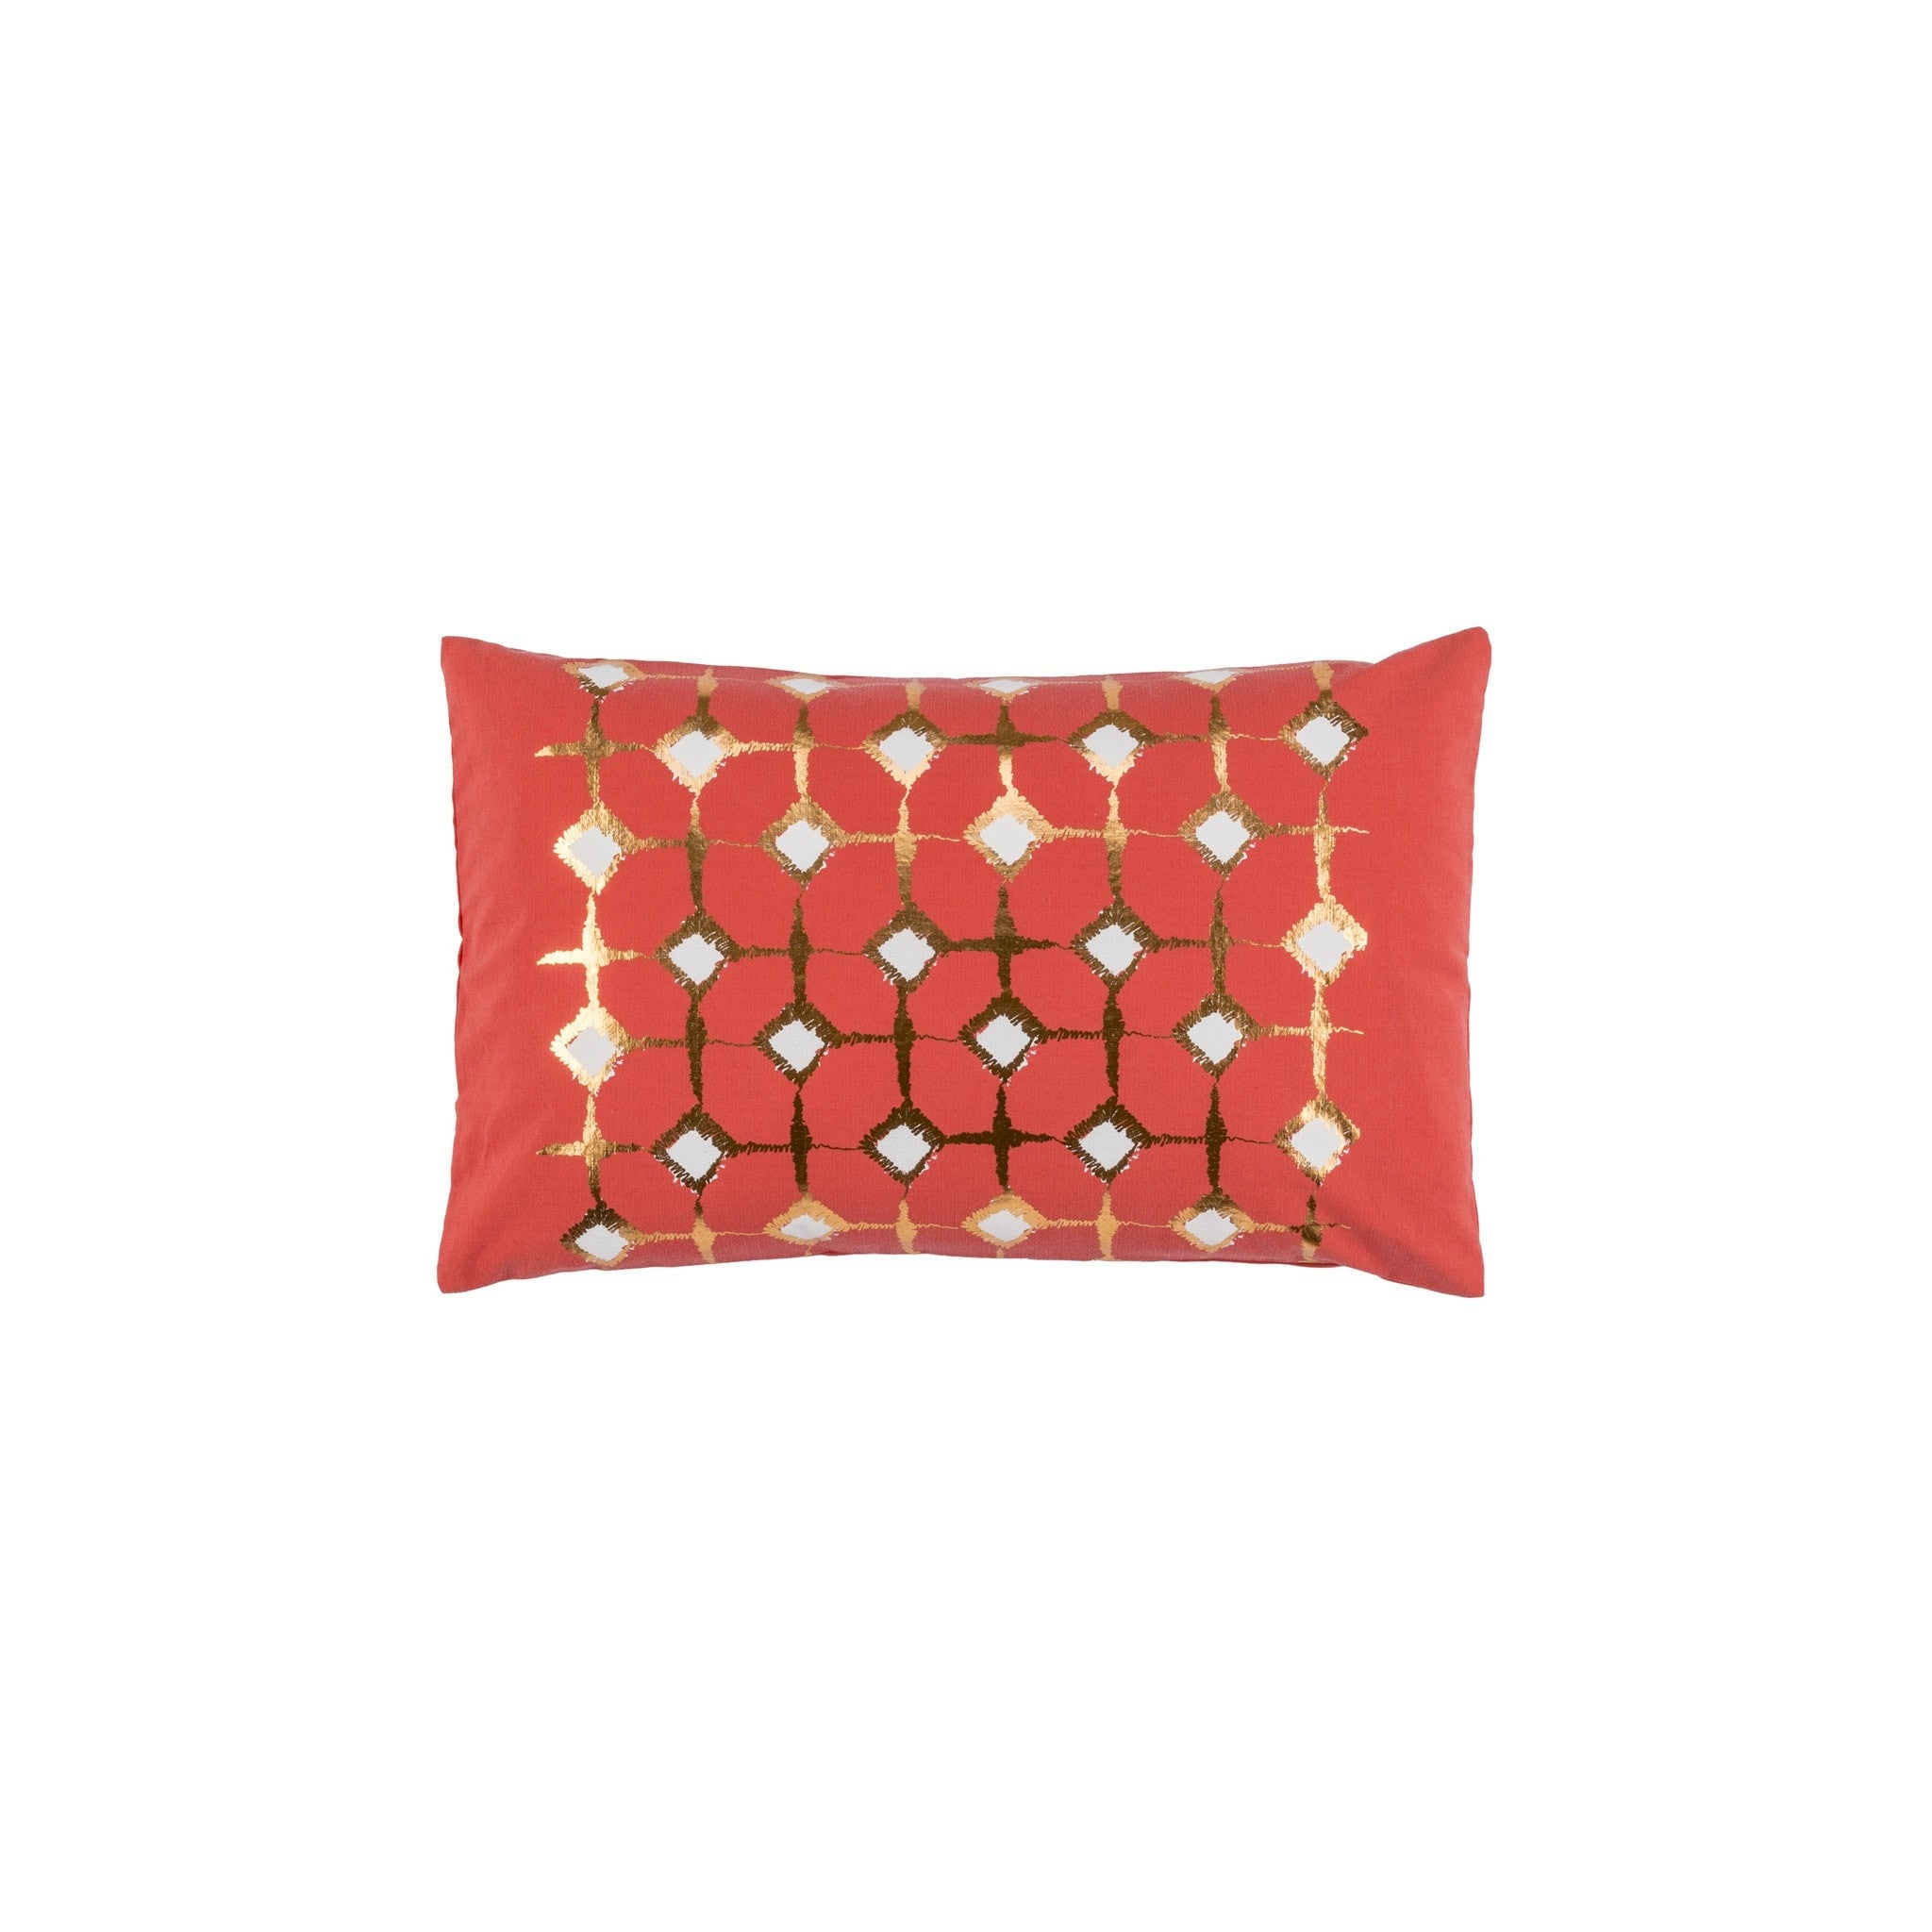 Signature Block Print Coral Cushion Covers